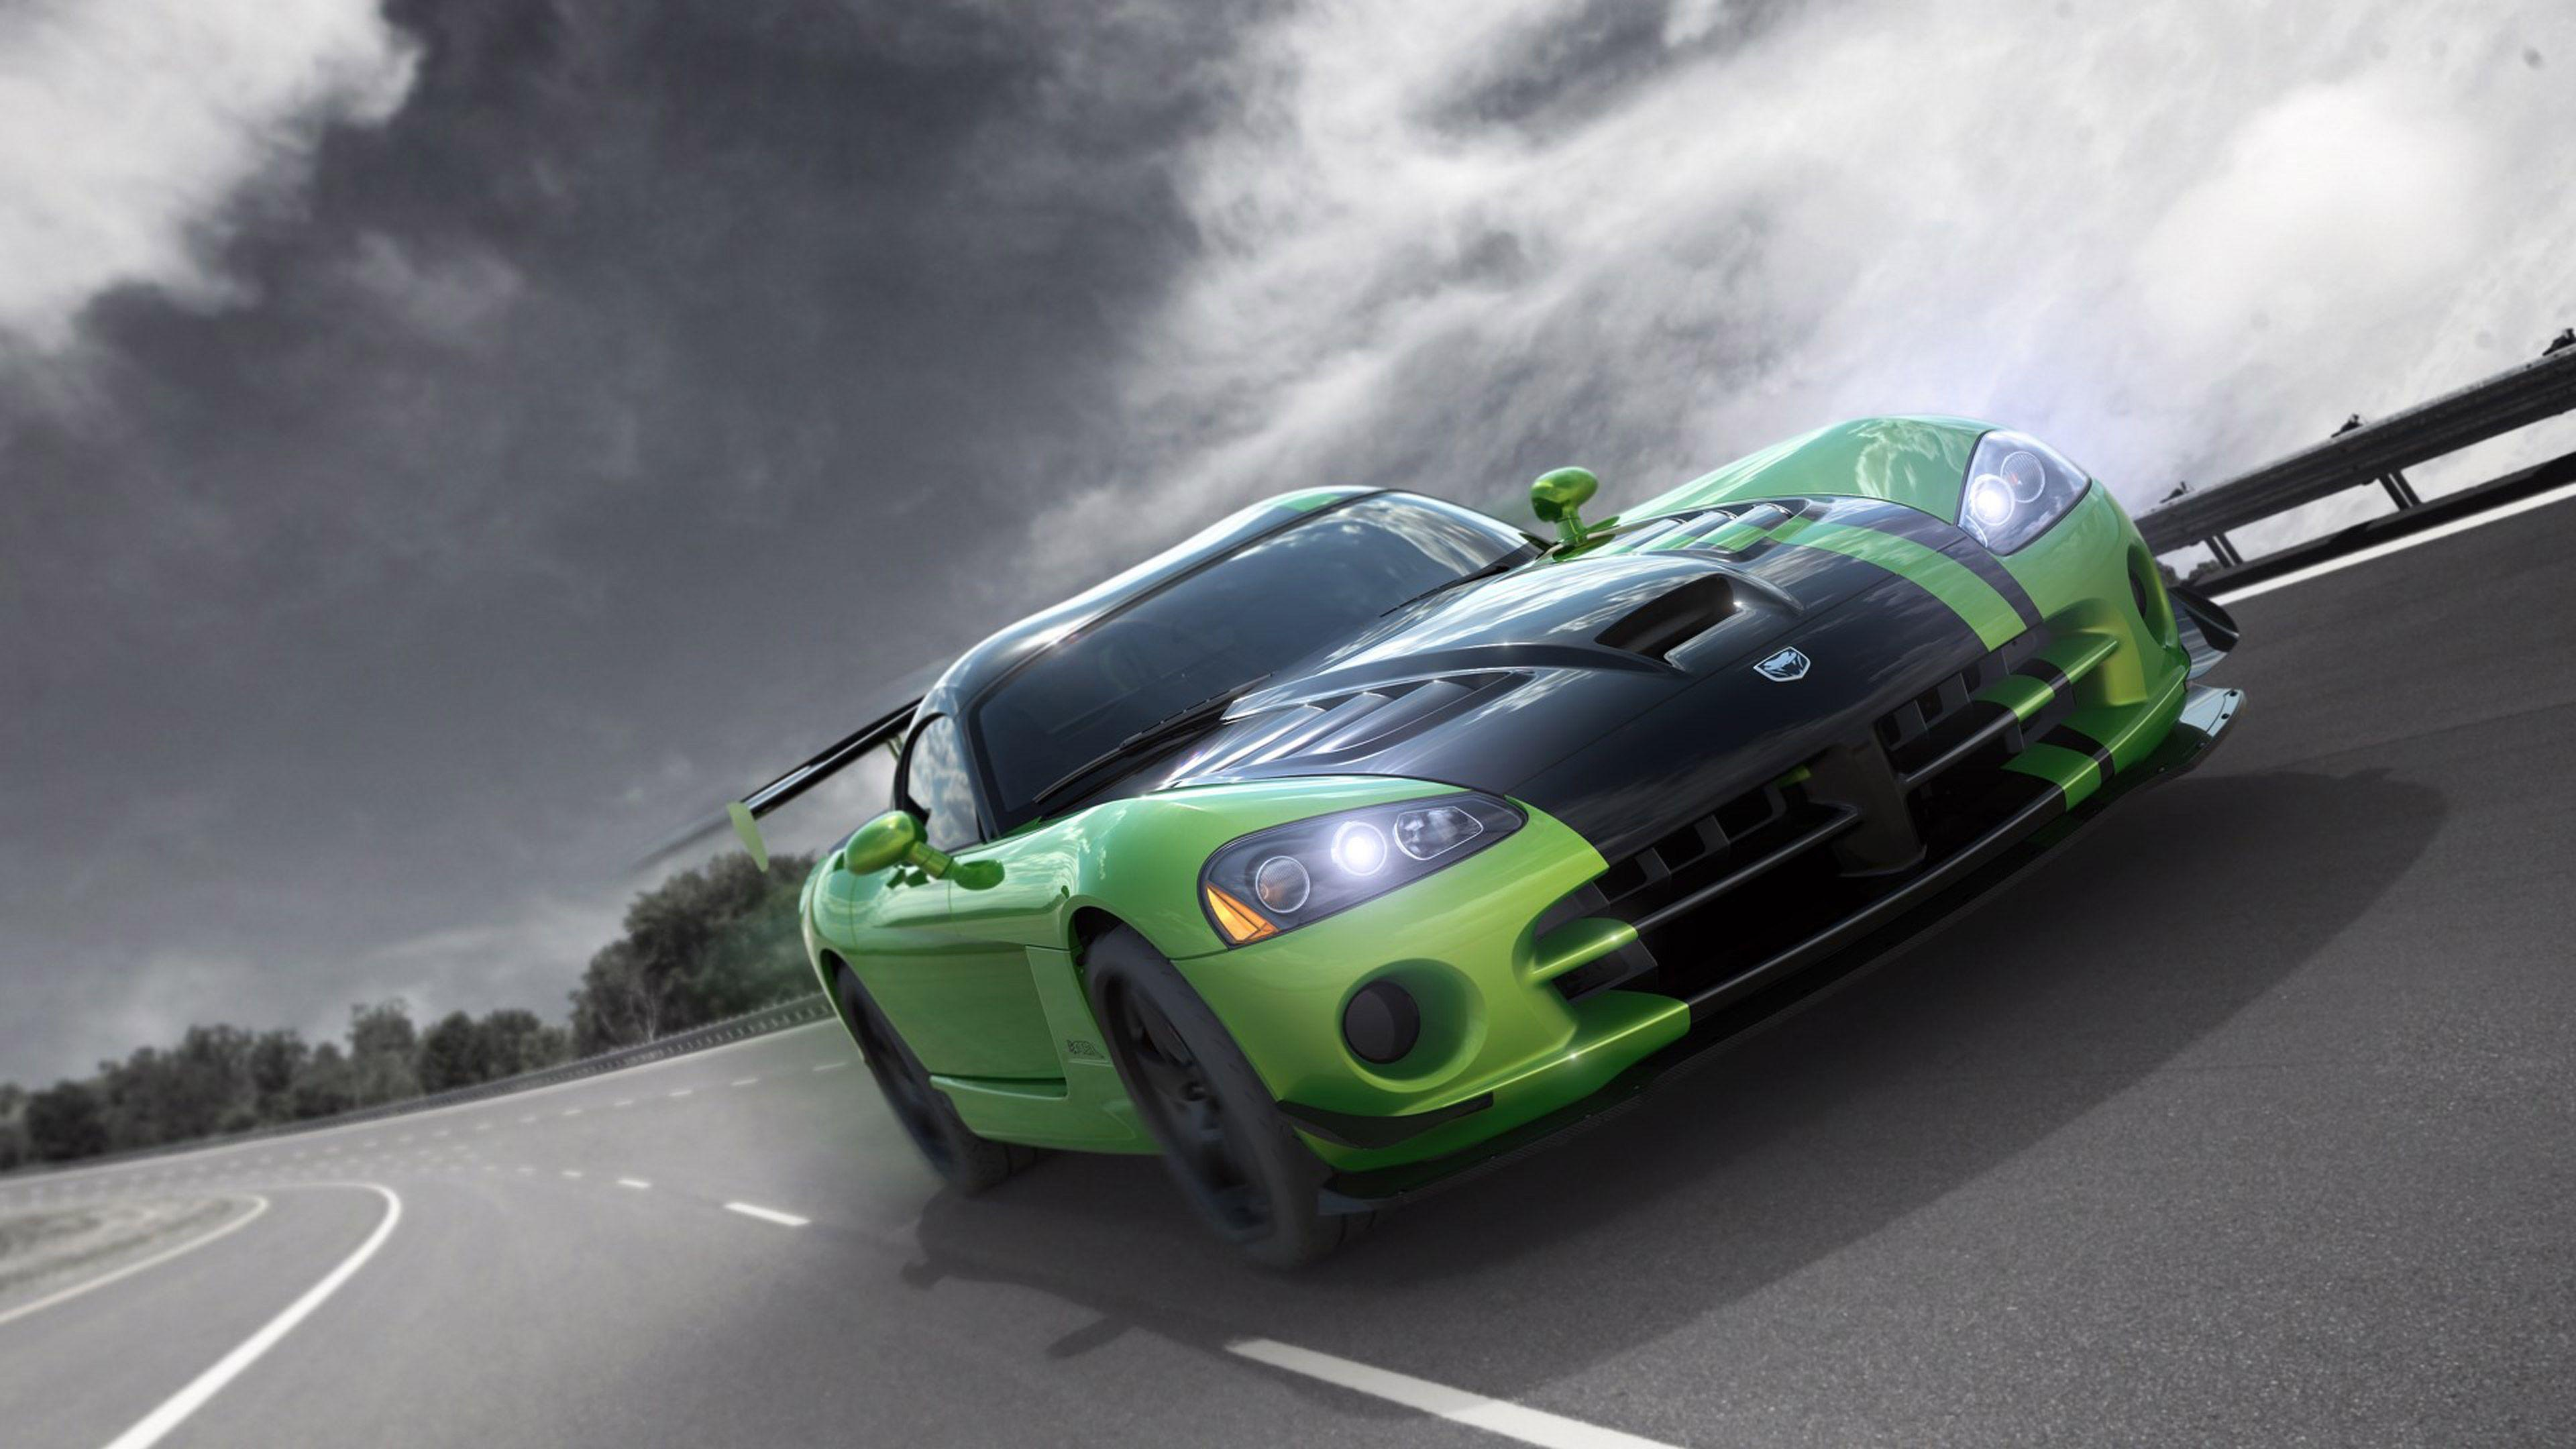 Dodge Viper 25th Anniversary Model dodge viper wallpapers, cars